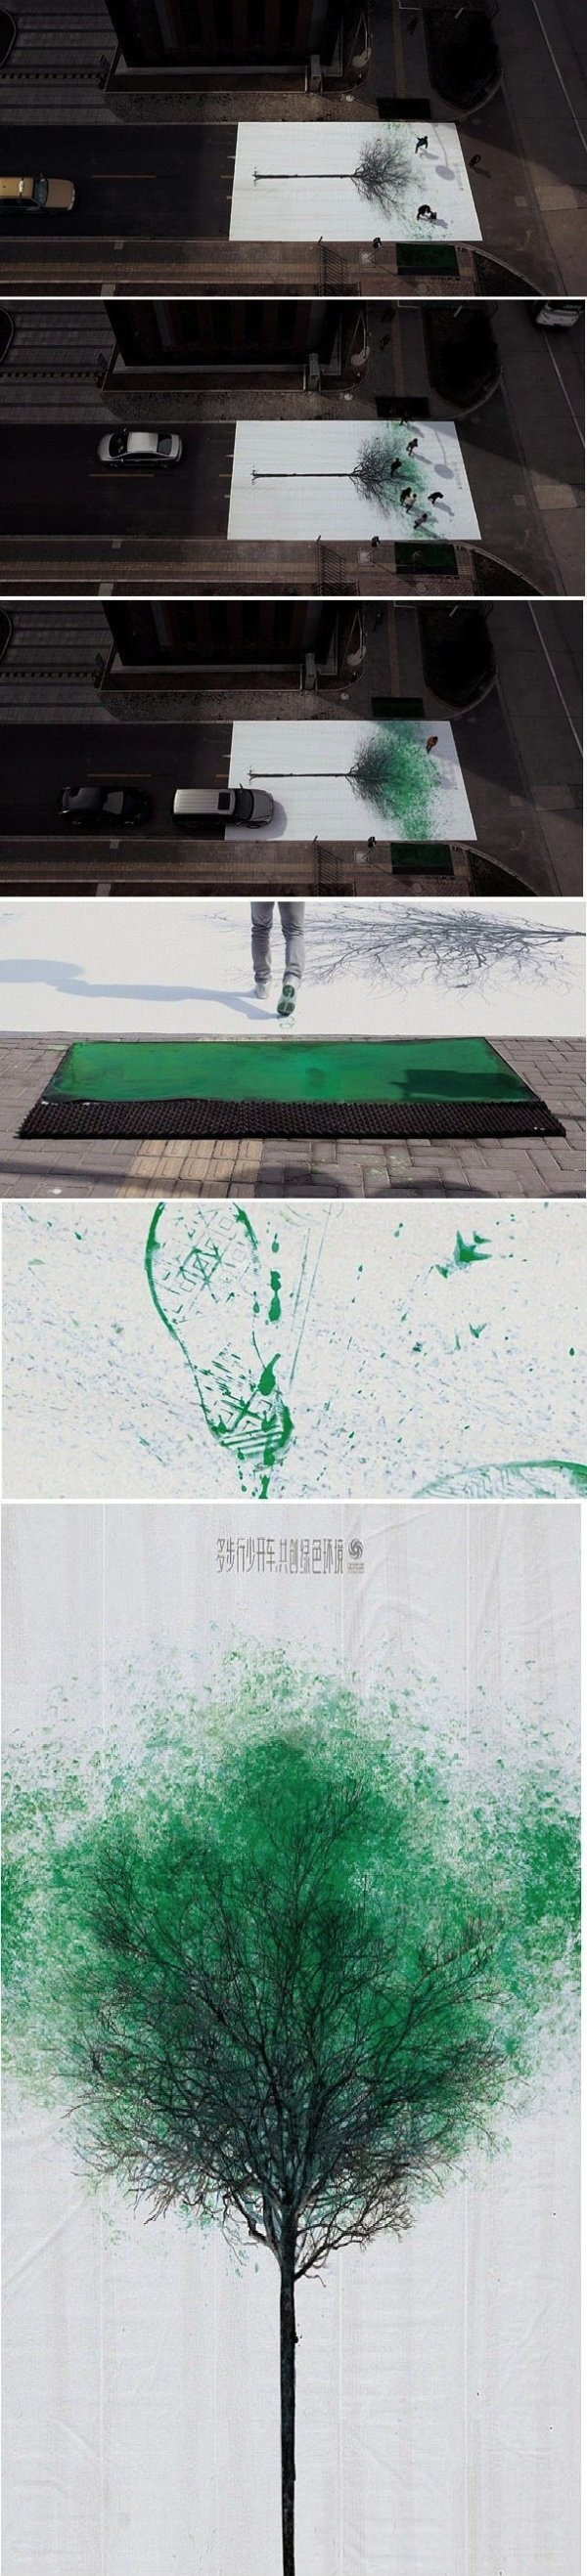 Wees geduldig wall sticker fun walls - Funny Pictures About Pedestrian Crossing In China Turns Footsteps Into Leaves Oh And Cool Pics About Pedestrian Crossing In China Turns Footsteps Into